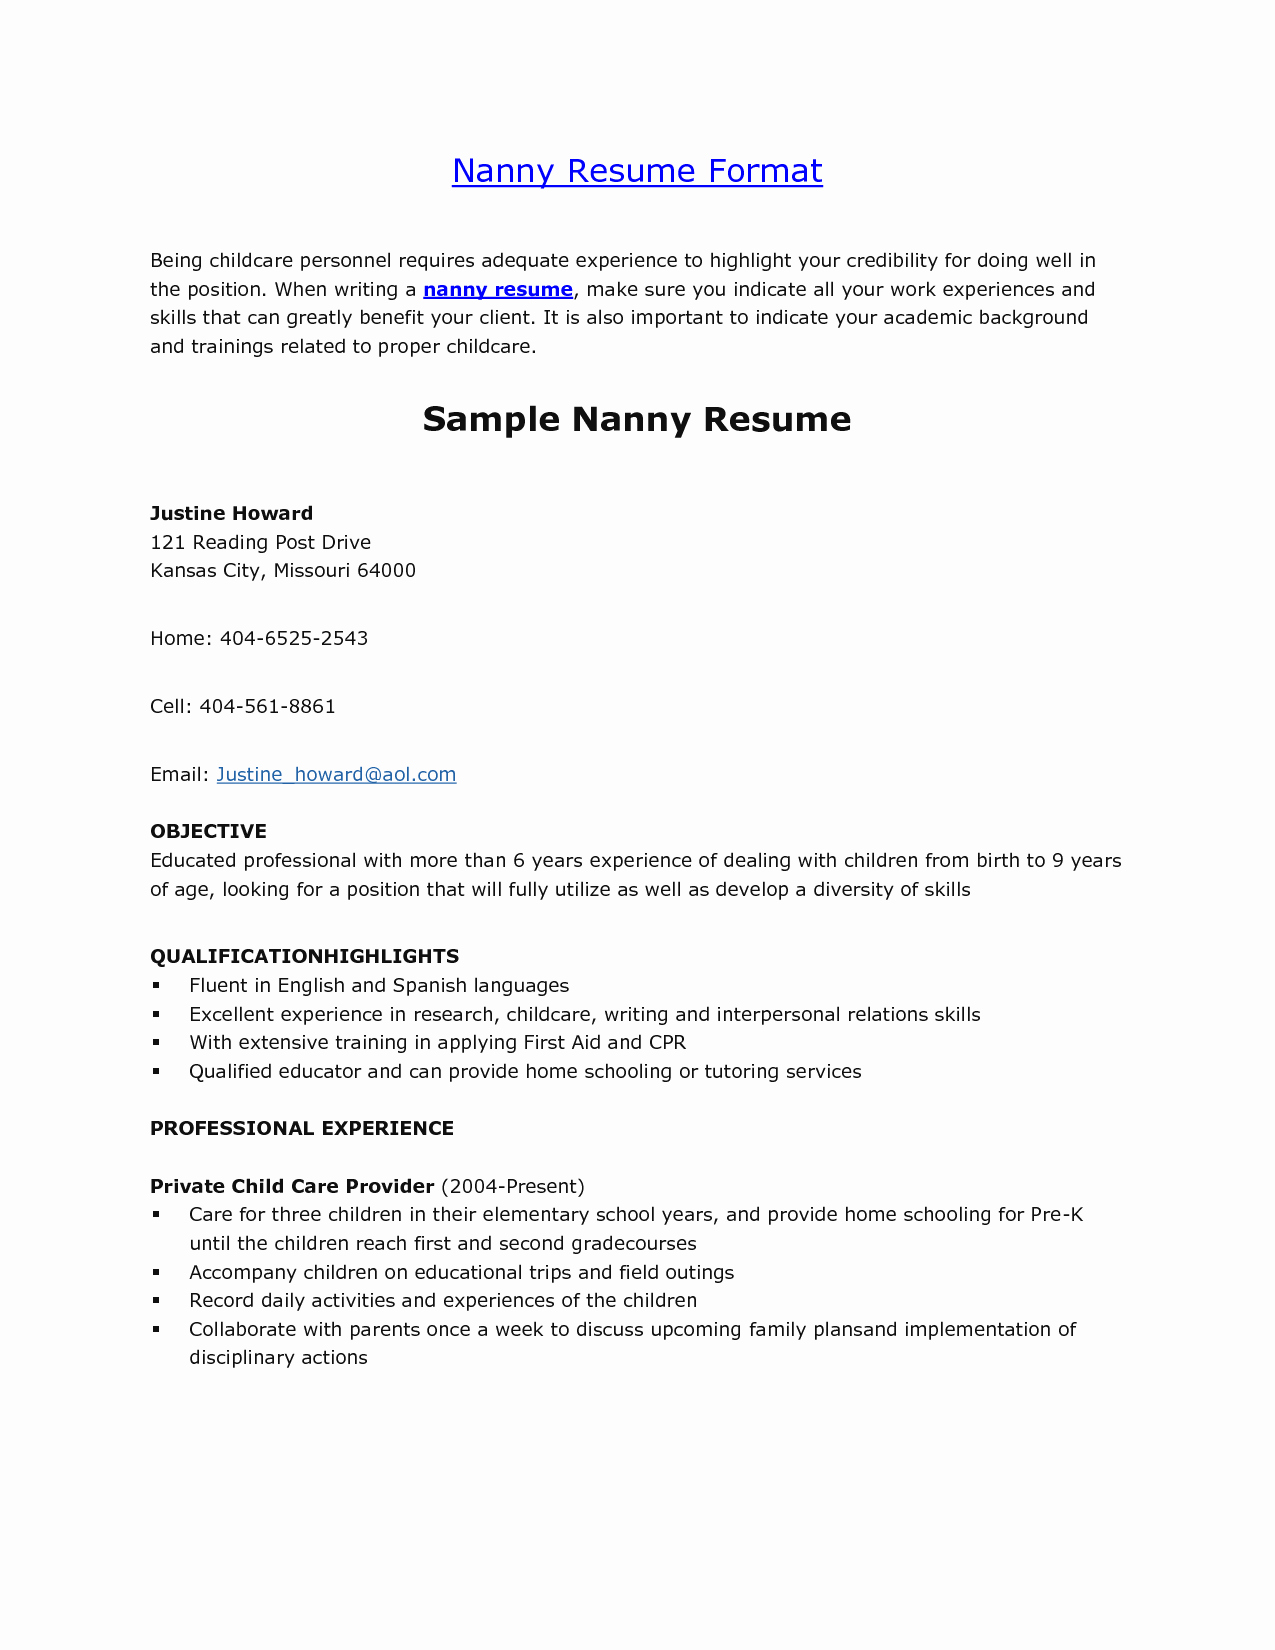 Examples Of Nanny Resumes Unique Nanny Resume Template